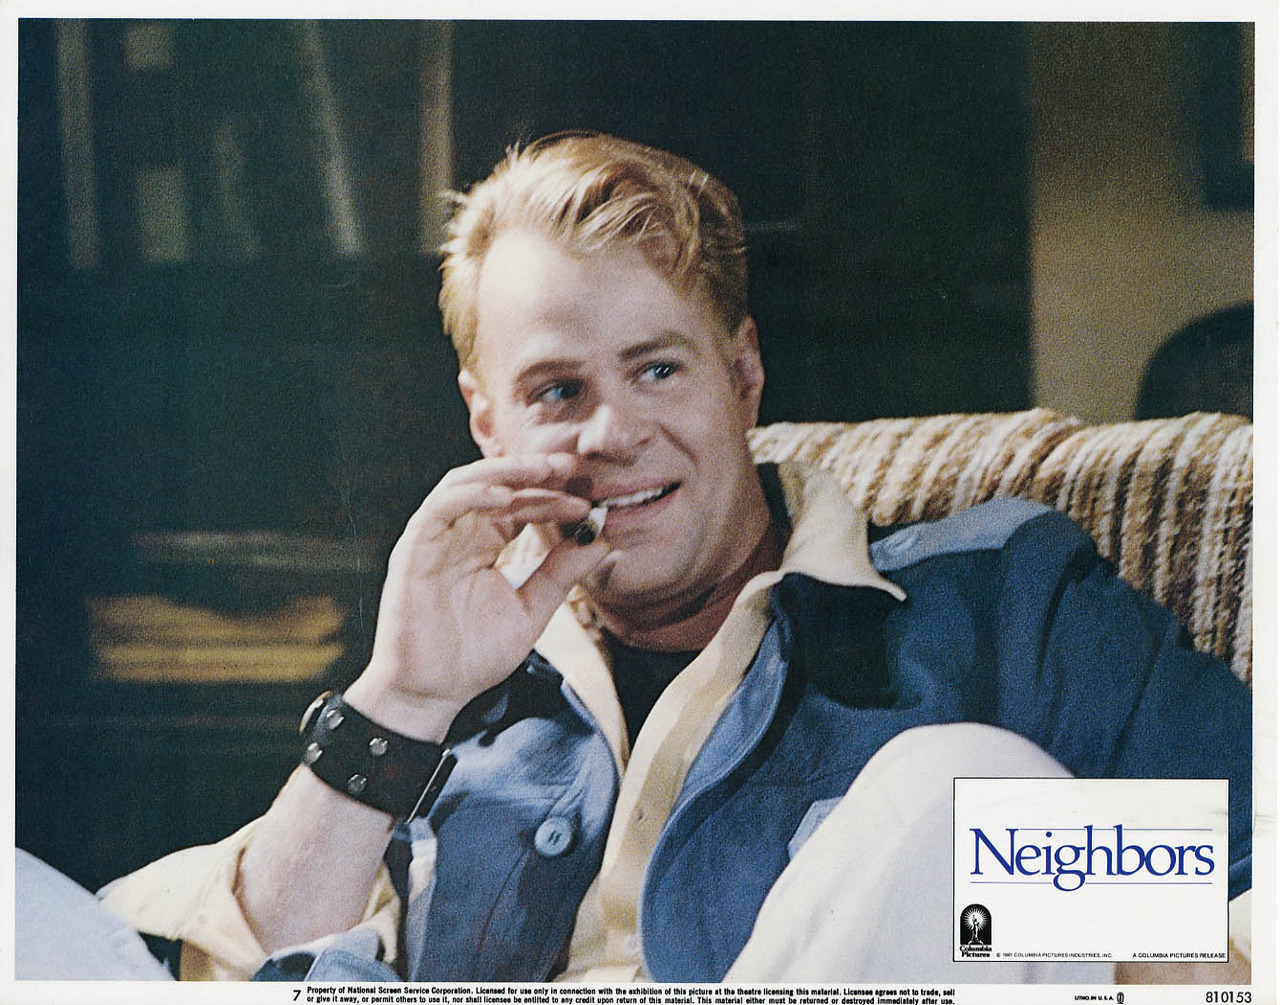 Neighbors, US lobby card. 1981